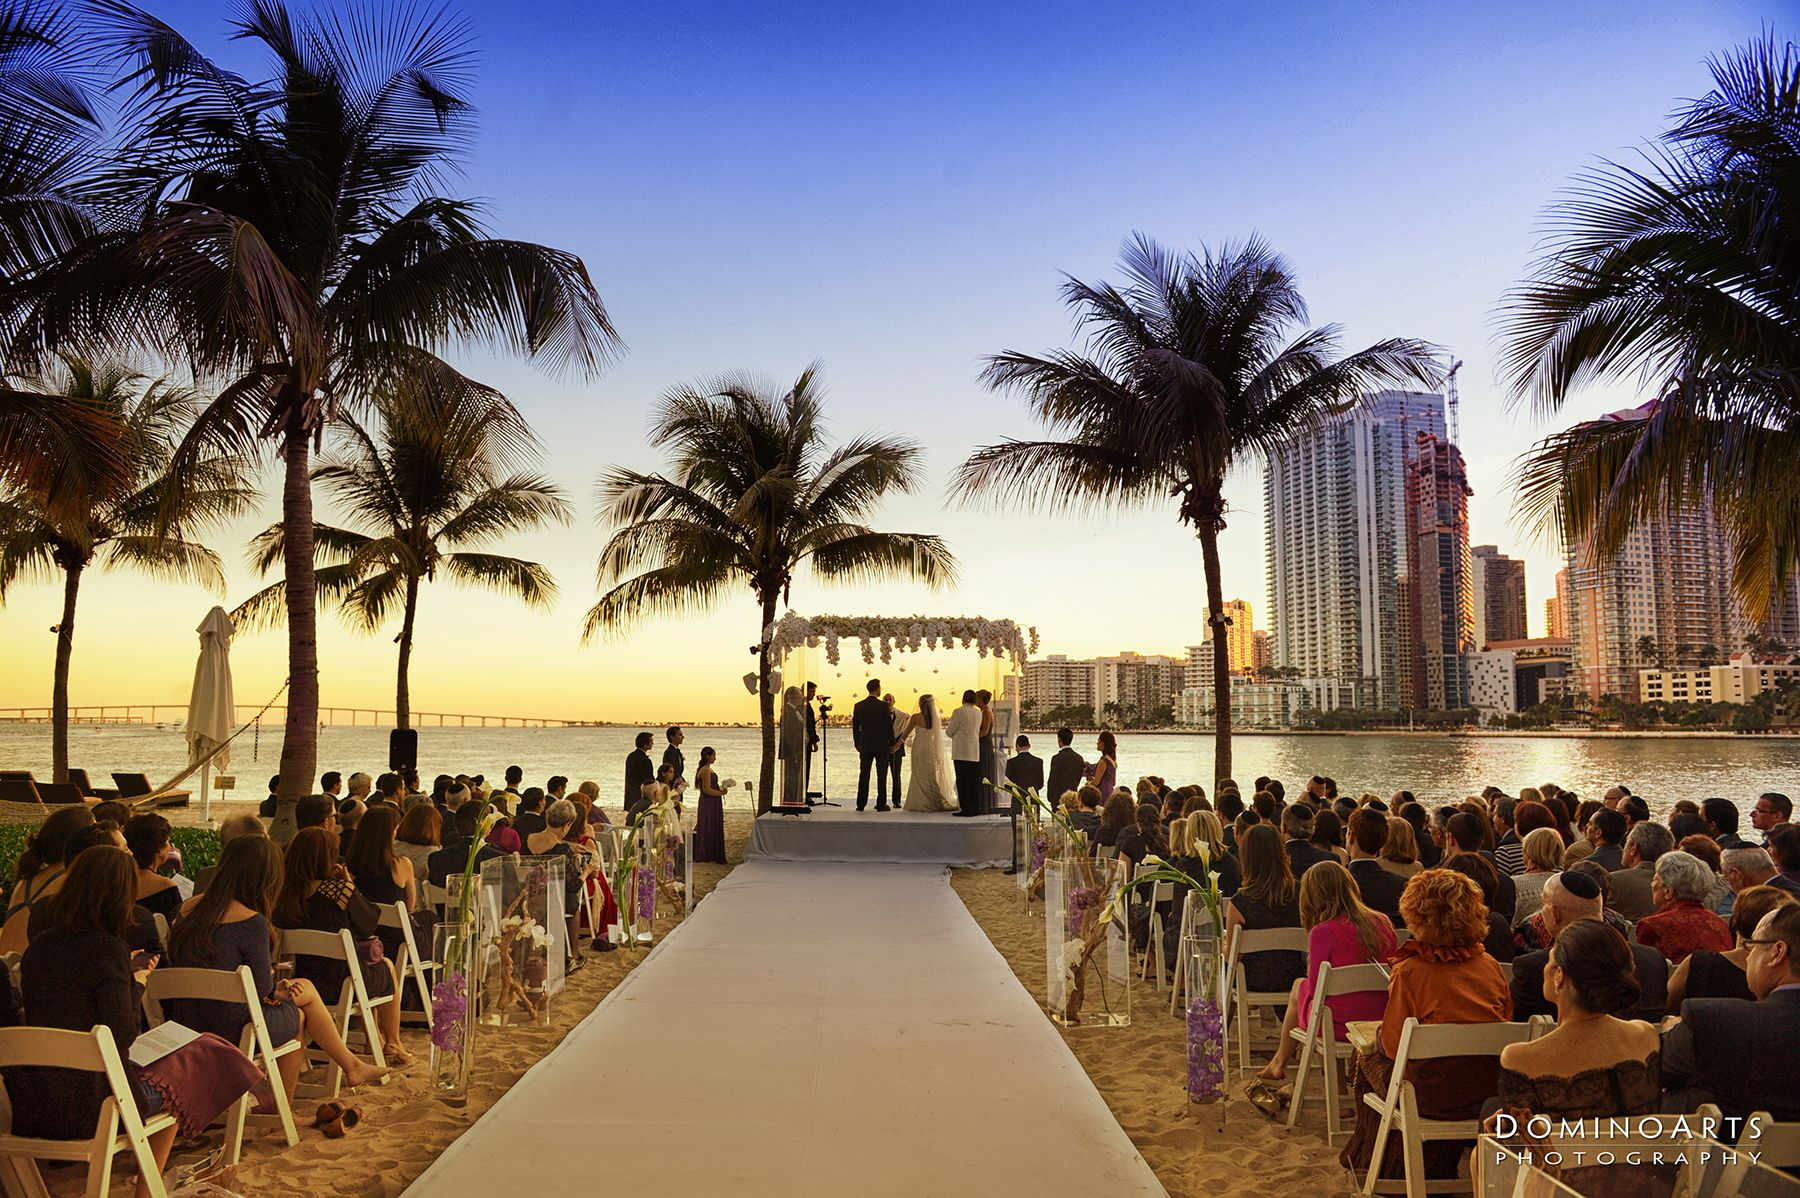 Alana and Adiels Miami Sunset Wedding Alana married the love of